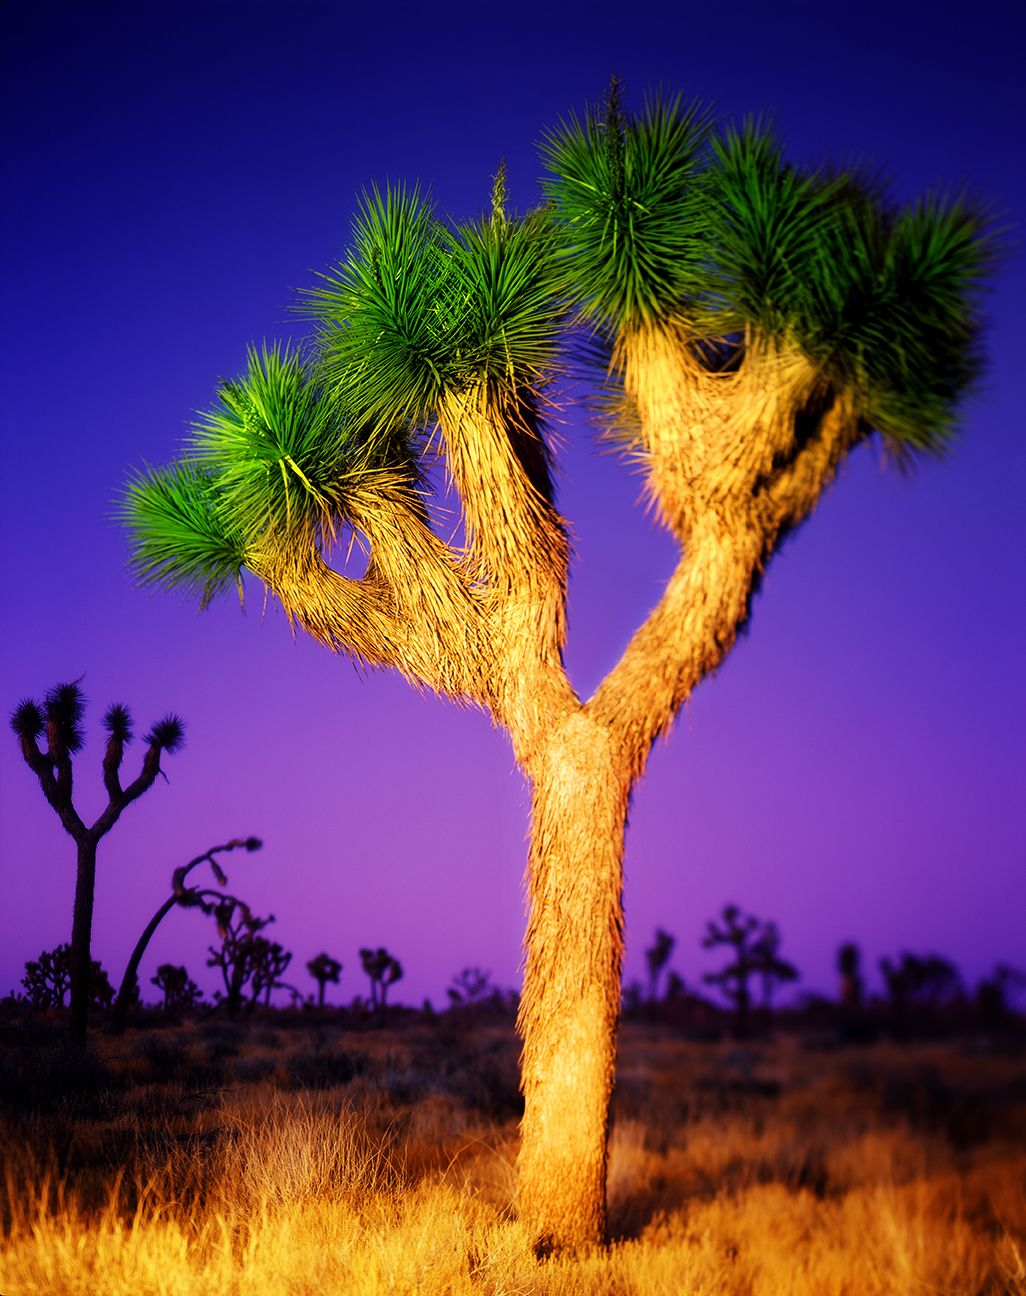 Joshua Tree, light painted